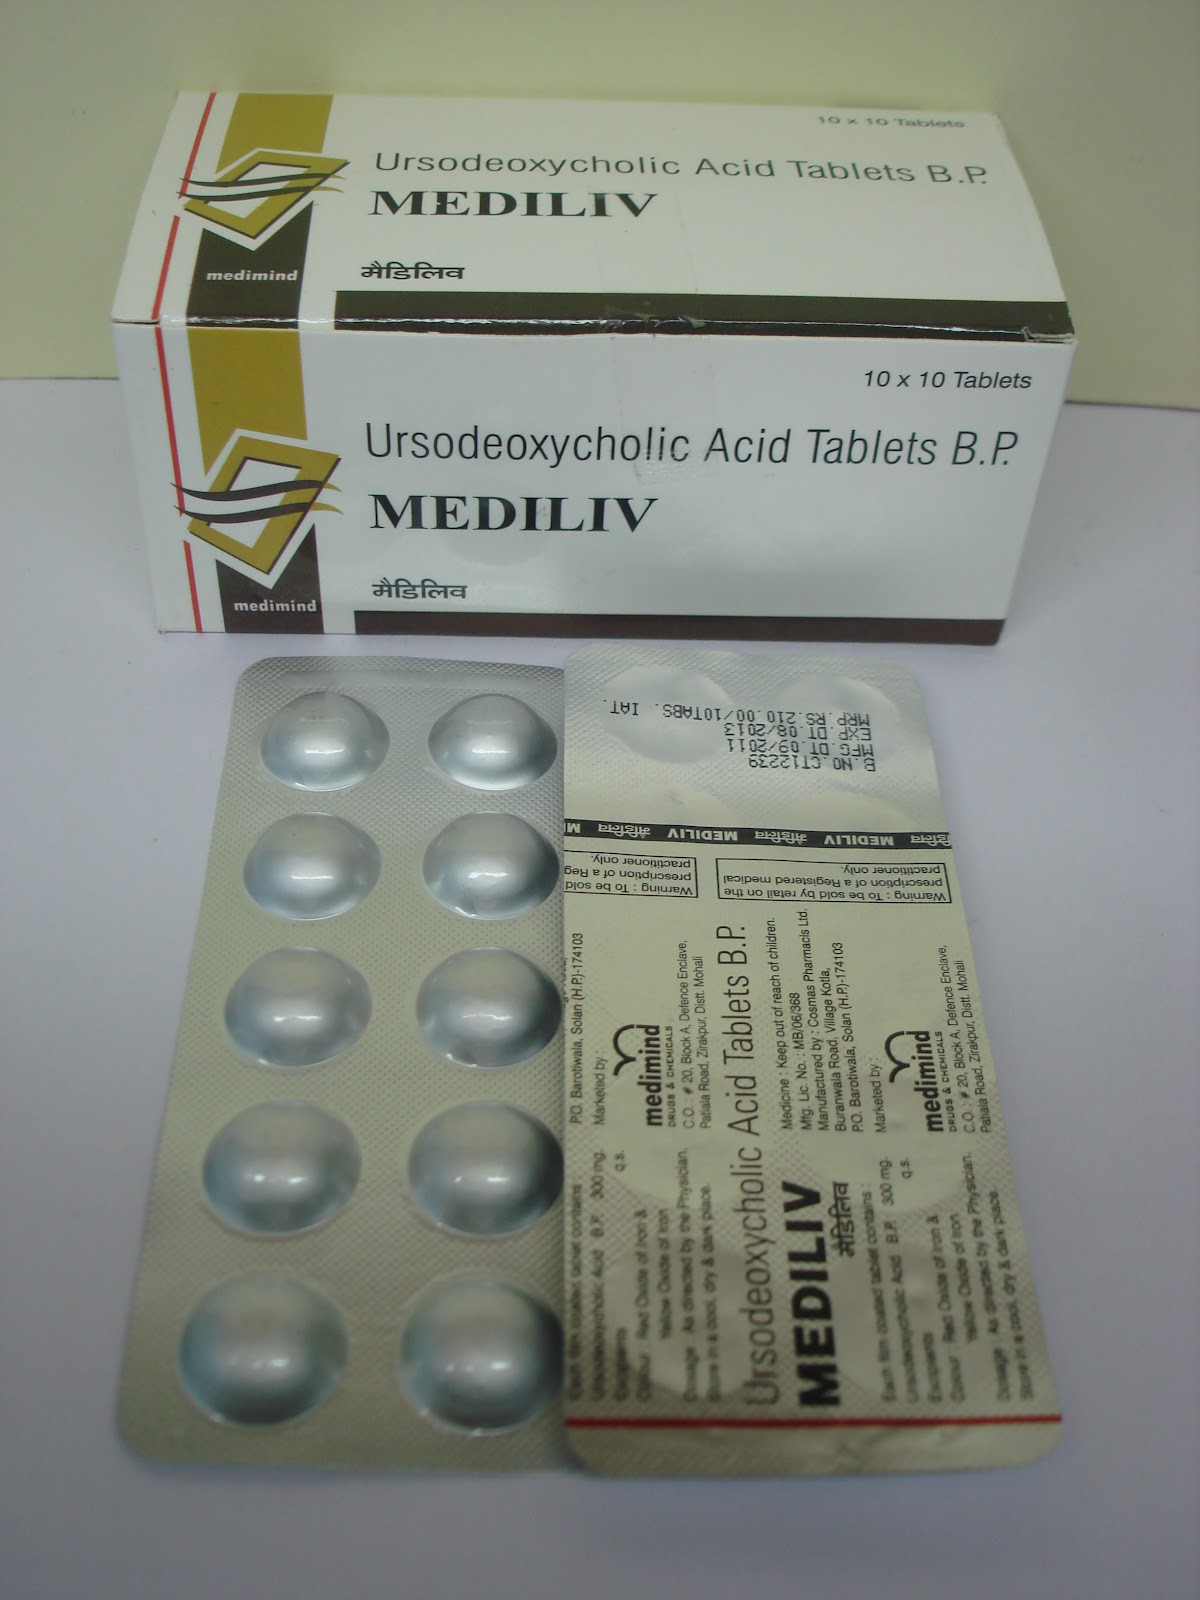 What Class Of Drug Is Ursodeoxycholic Acid